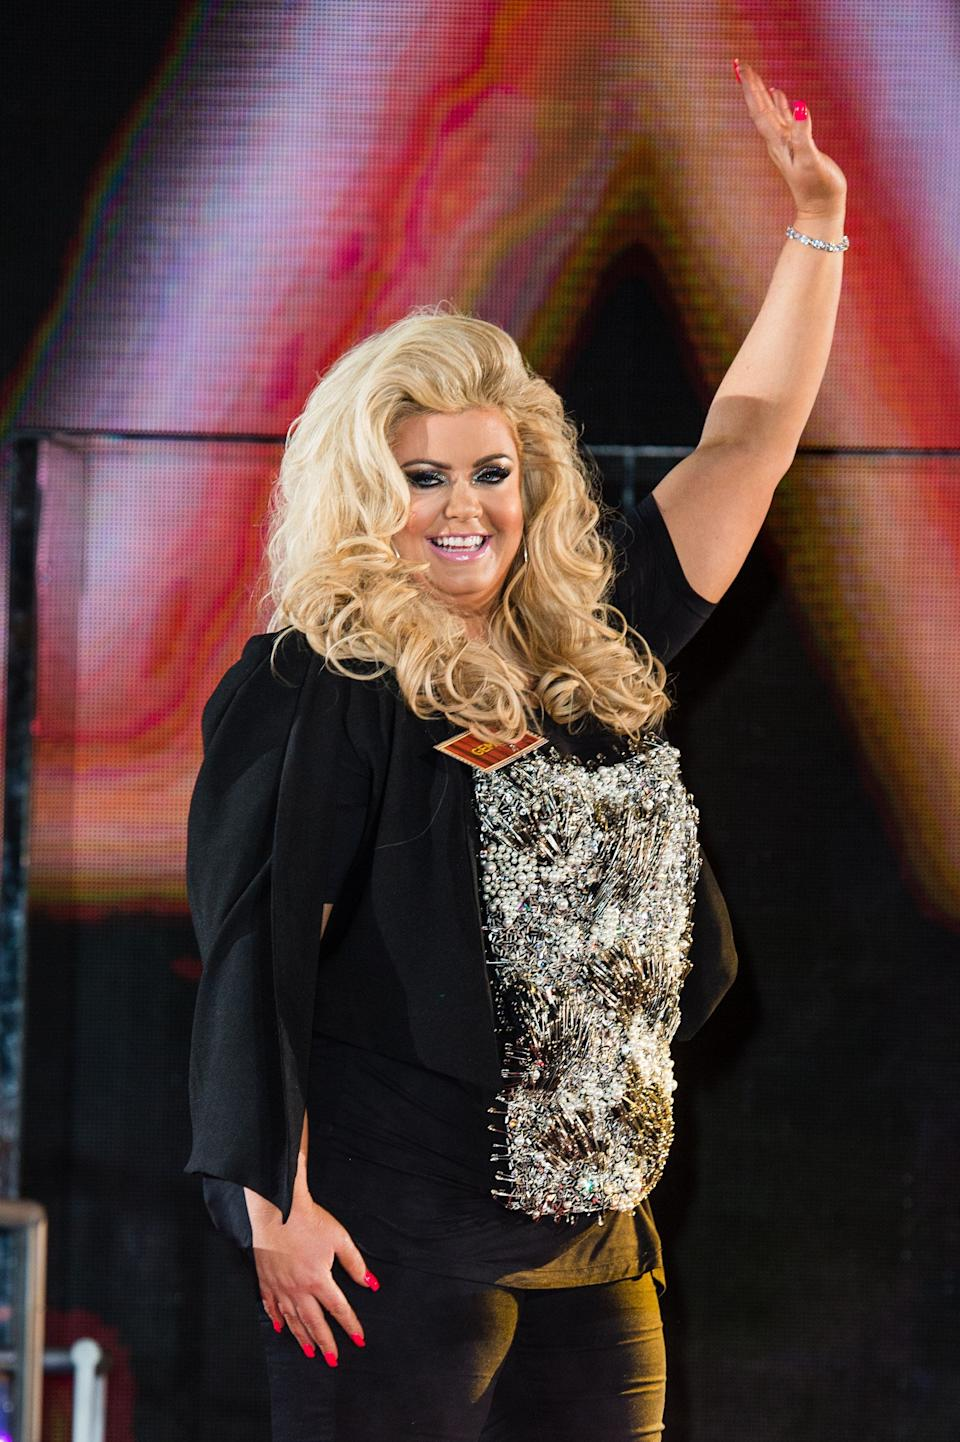 """Since making her debut in the second series of TOWIE, The GC has made a string of eyebrow-raising appearances on reality TV.<br /><br />Her stint on Splash! won her praise for her zero-f***s-given attitude to diving, although her brief spell in the I'm A Celebrity jungle was slightly less celebrated.<br /><br />Celebrity Big Brother led to her becoming the queen of memes (or """"memays"""" as she would say), after which she appeared on Celebs Go Dating, Celebrity Masterchef and All Together Now.<br /><br />You might also remember her headline-grabbing stint on Dancing On Ice, which included furious rows with judge Jason Gardiner, over-the-top outfits and a toe-curling fall on the ice."""